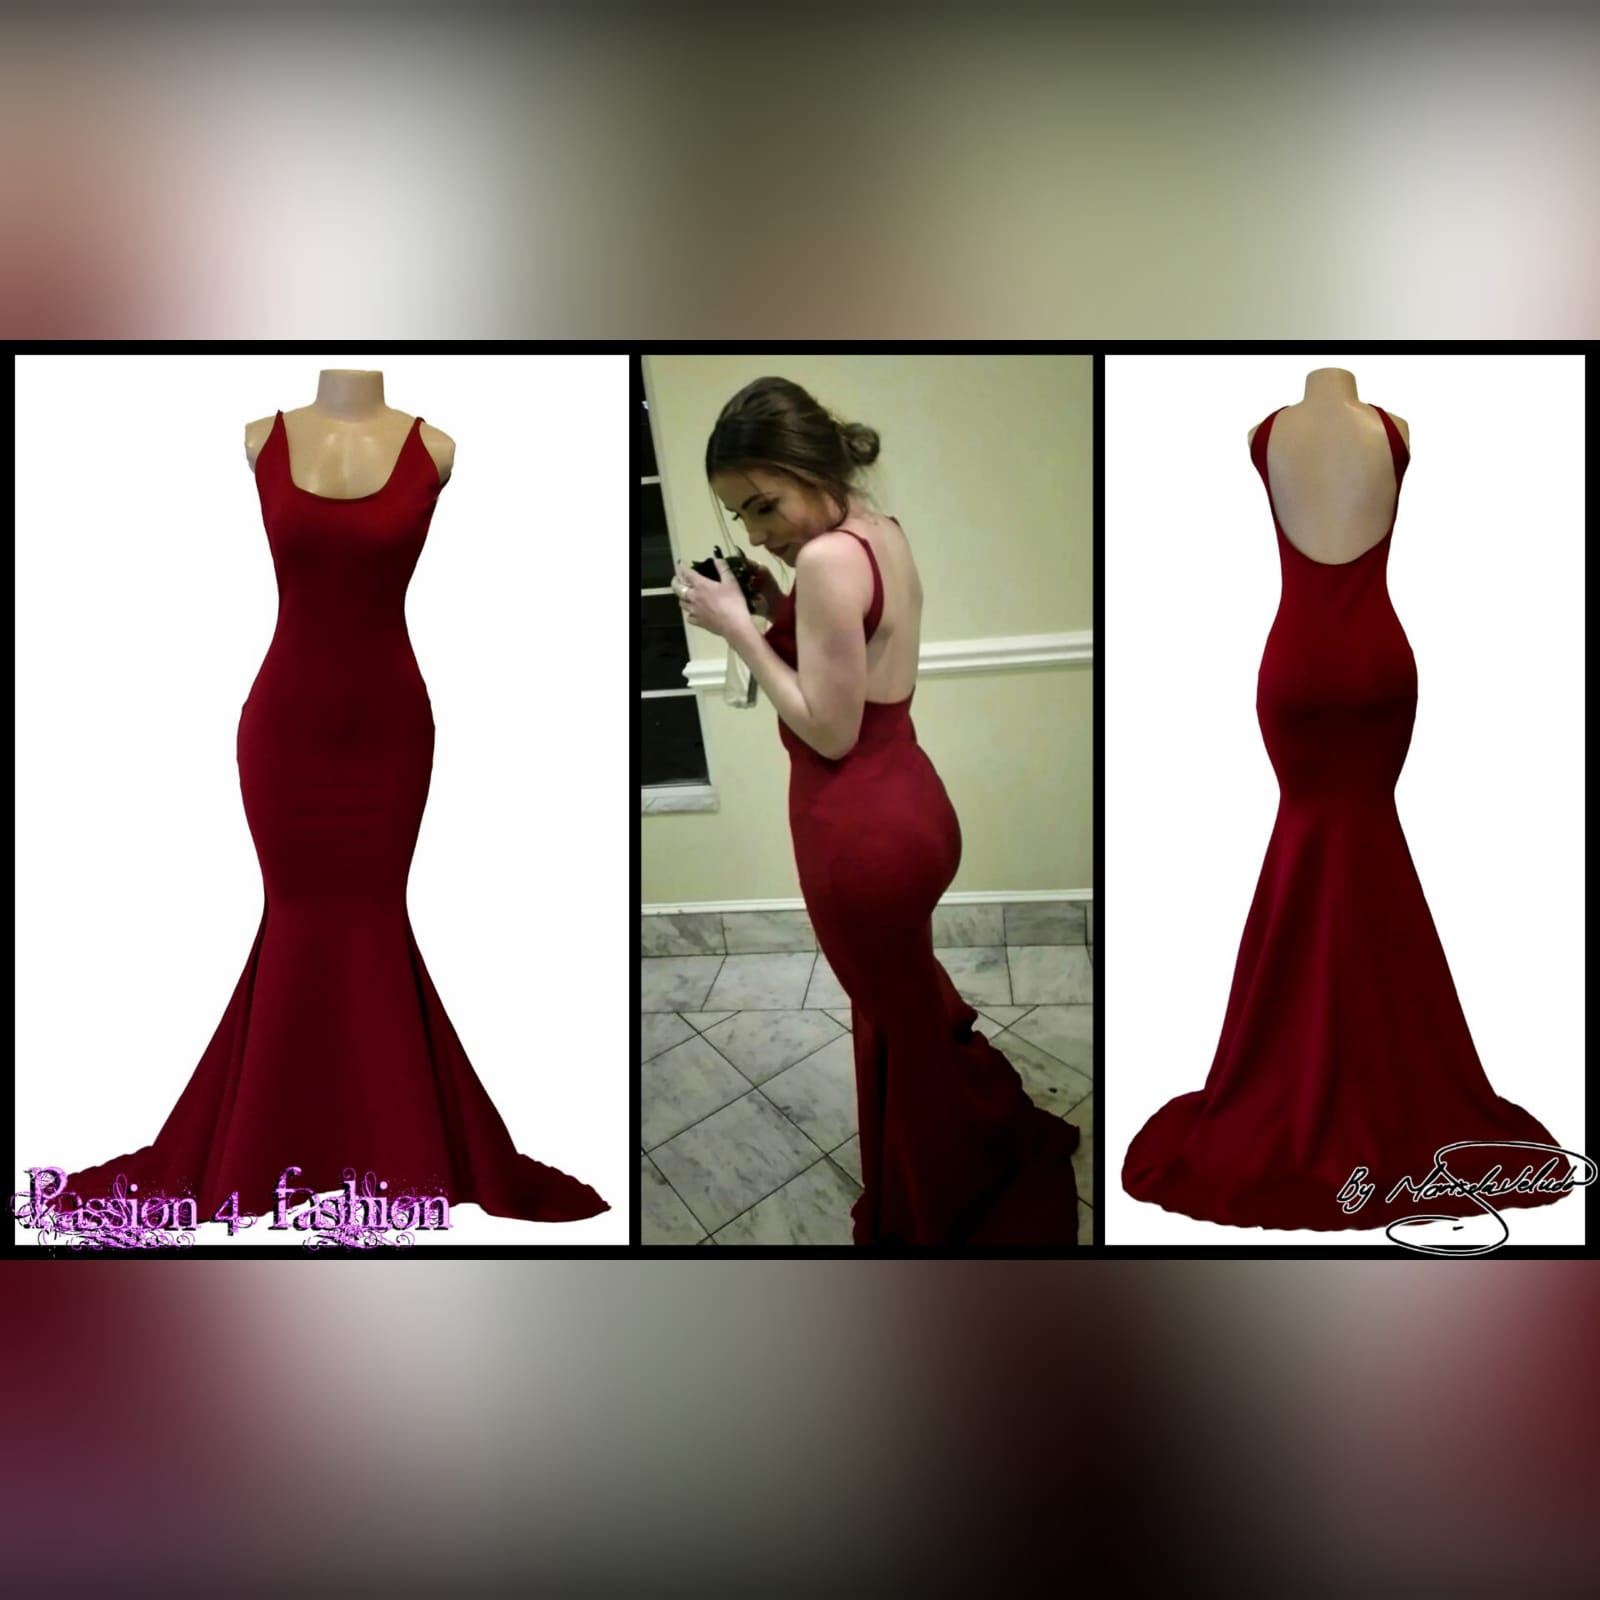 Maroon simple soft mermaid prom dress 2 maroon simple soft mermaid prom dress with a squared neckline, low rounded open back and a little train.